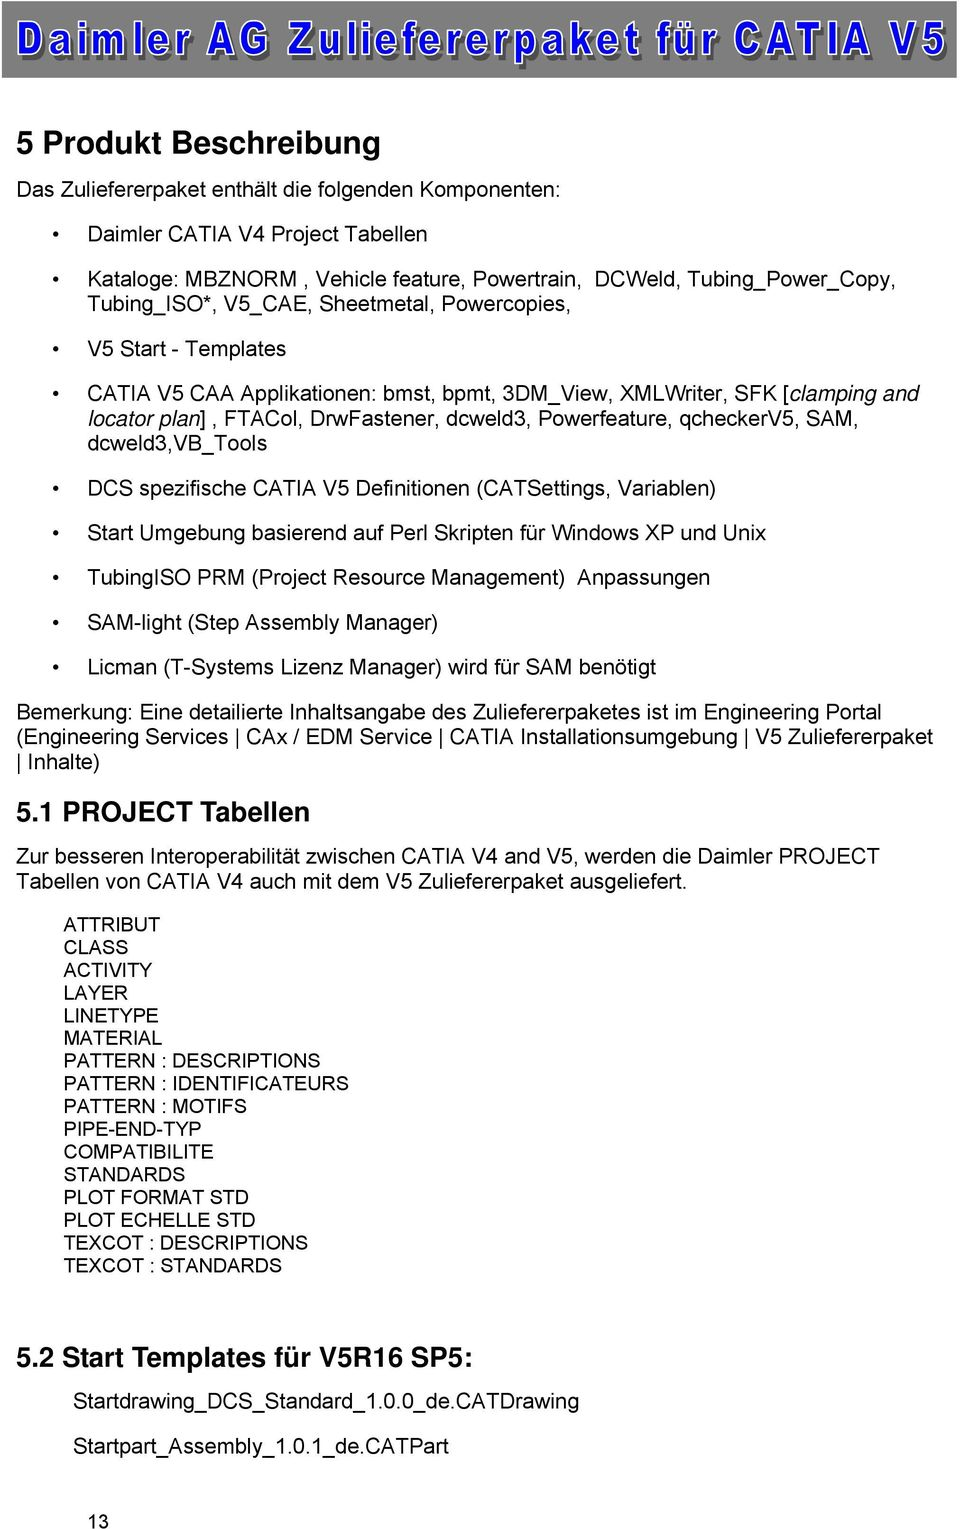 qcheckerv5, SAM, dcweld3,vb_tools DCS spezifische CATIA V5 Definitionen (CATSettings, Variablen) Start Umgebung basierend auf Perl Skripten für Windows XP und Unix TubingISO PRM (Project Resource